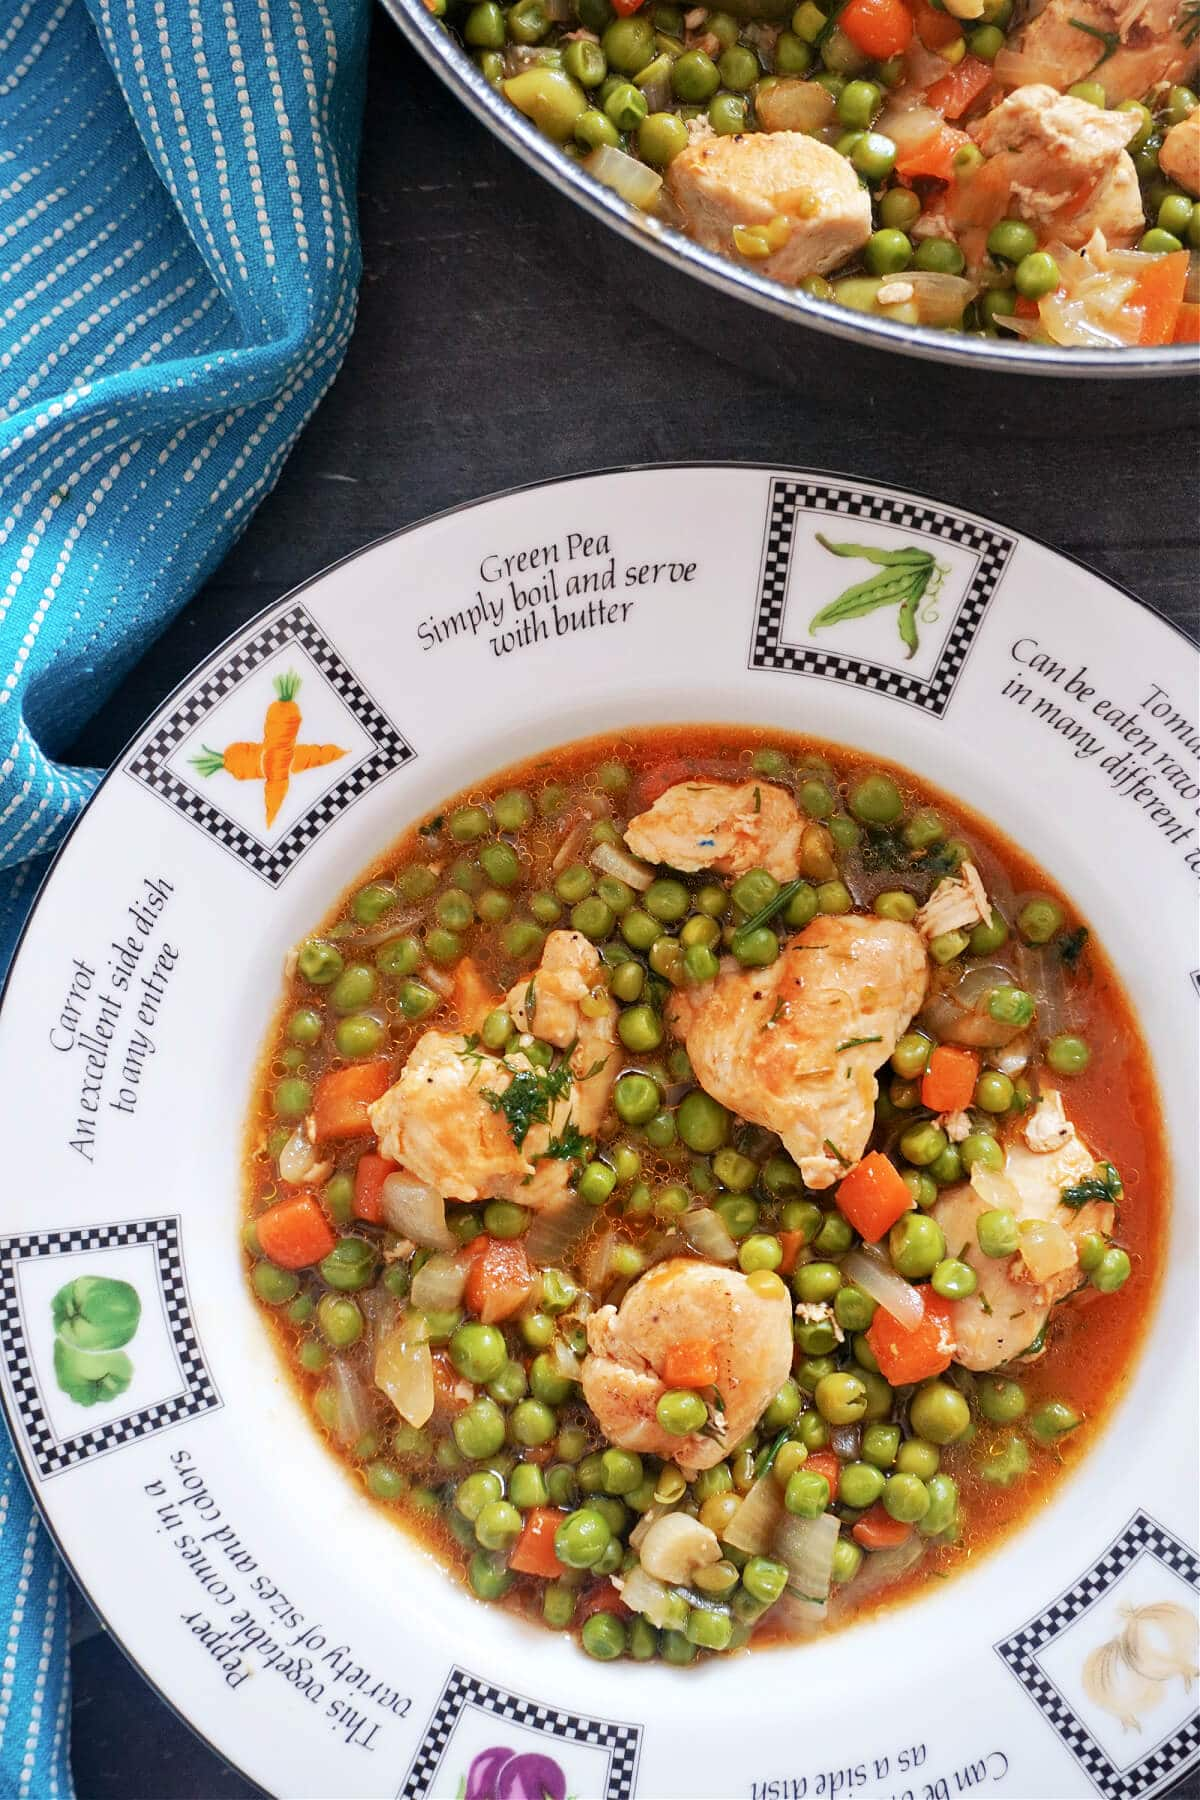 Overhead shot of a white plate with chicken and pea stew